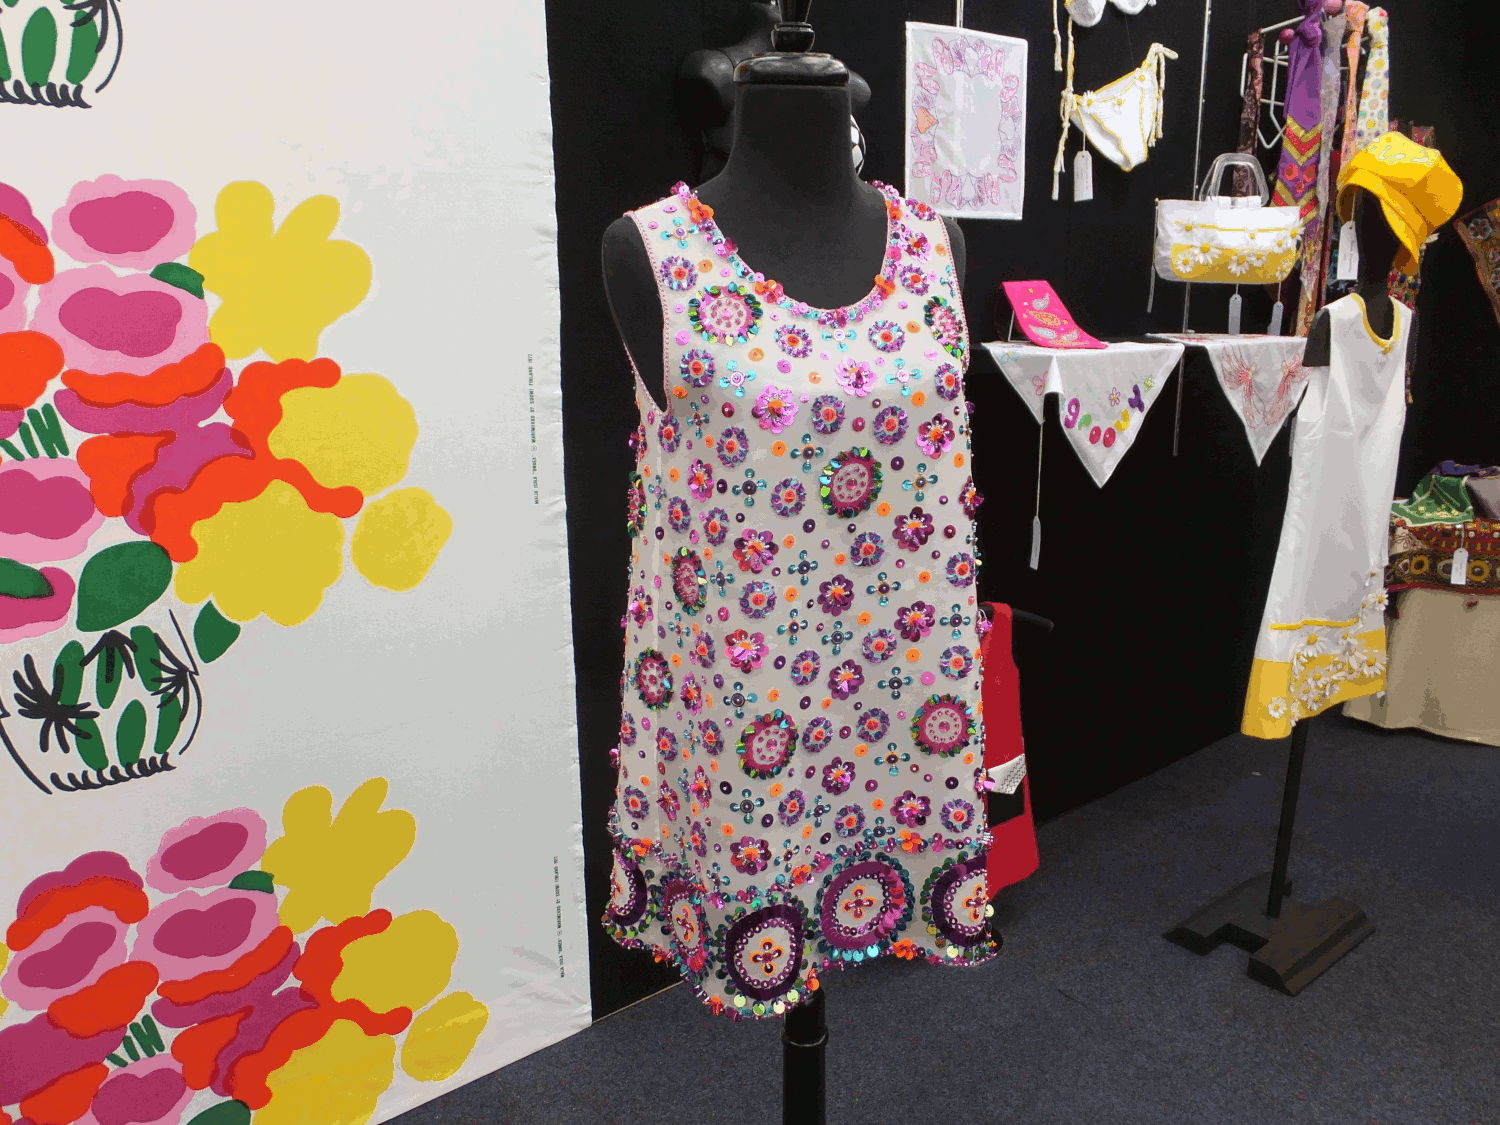 The Embroiderers' Guild N.S.W's Feature Space in the Craft & Quilt Fair at Darling Harbour, 2016. The theme was Carnaby Street in the 1960's. Mary was the art director for this installation. Pieces were worked by Embroiderers' Guild members.